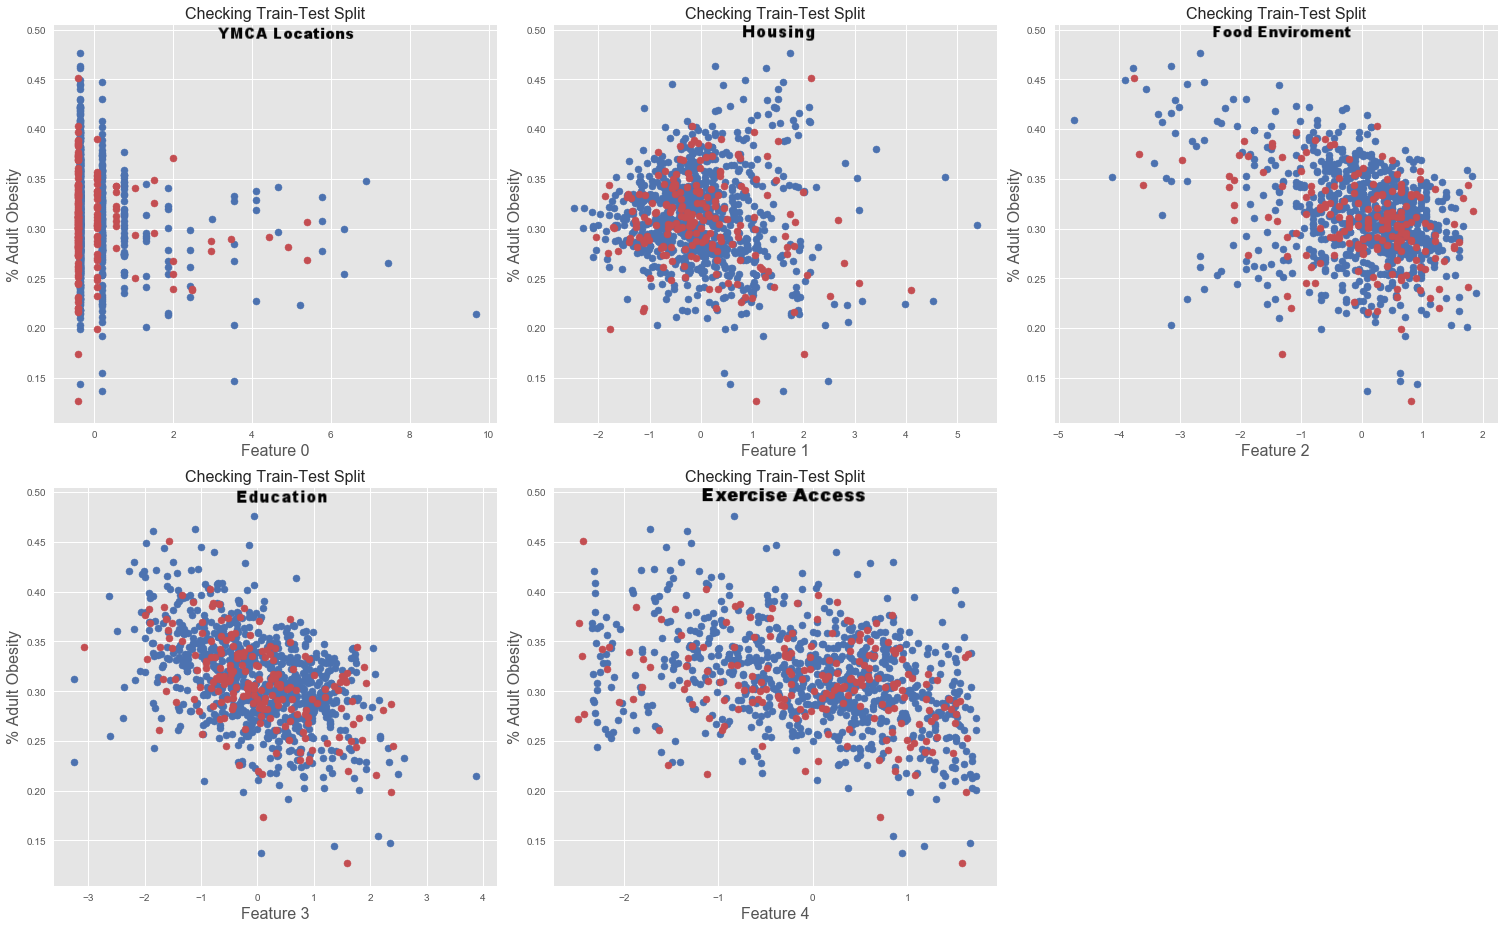 To visualize the test-train split of each feature, we look at a scatter plot of each feature (X-axis) against the target (Y-axis) and color the data points in the test set red and train set blue.